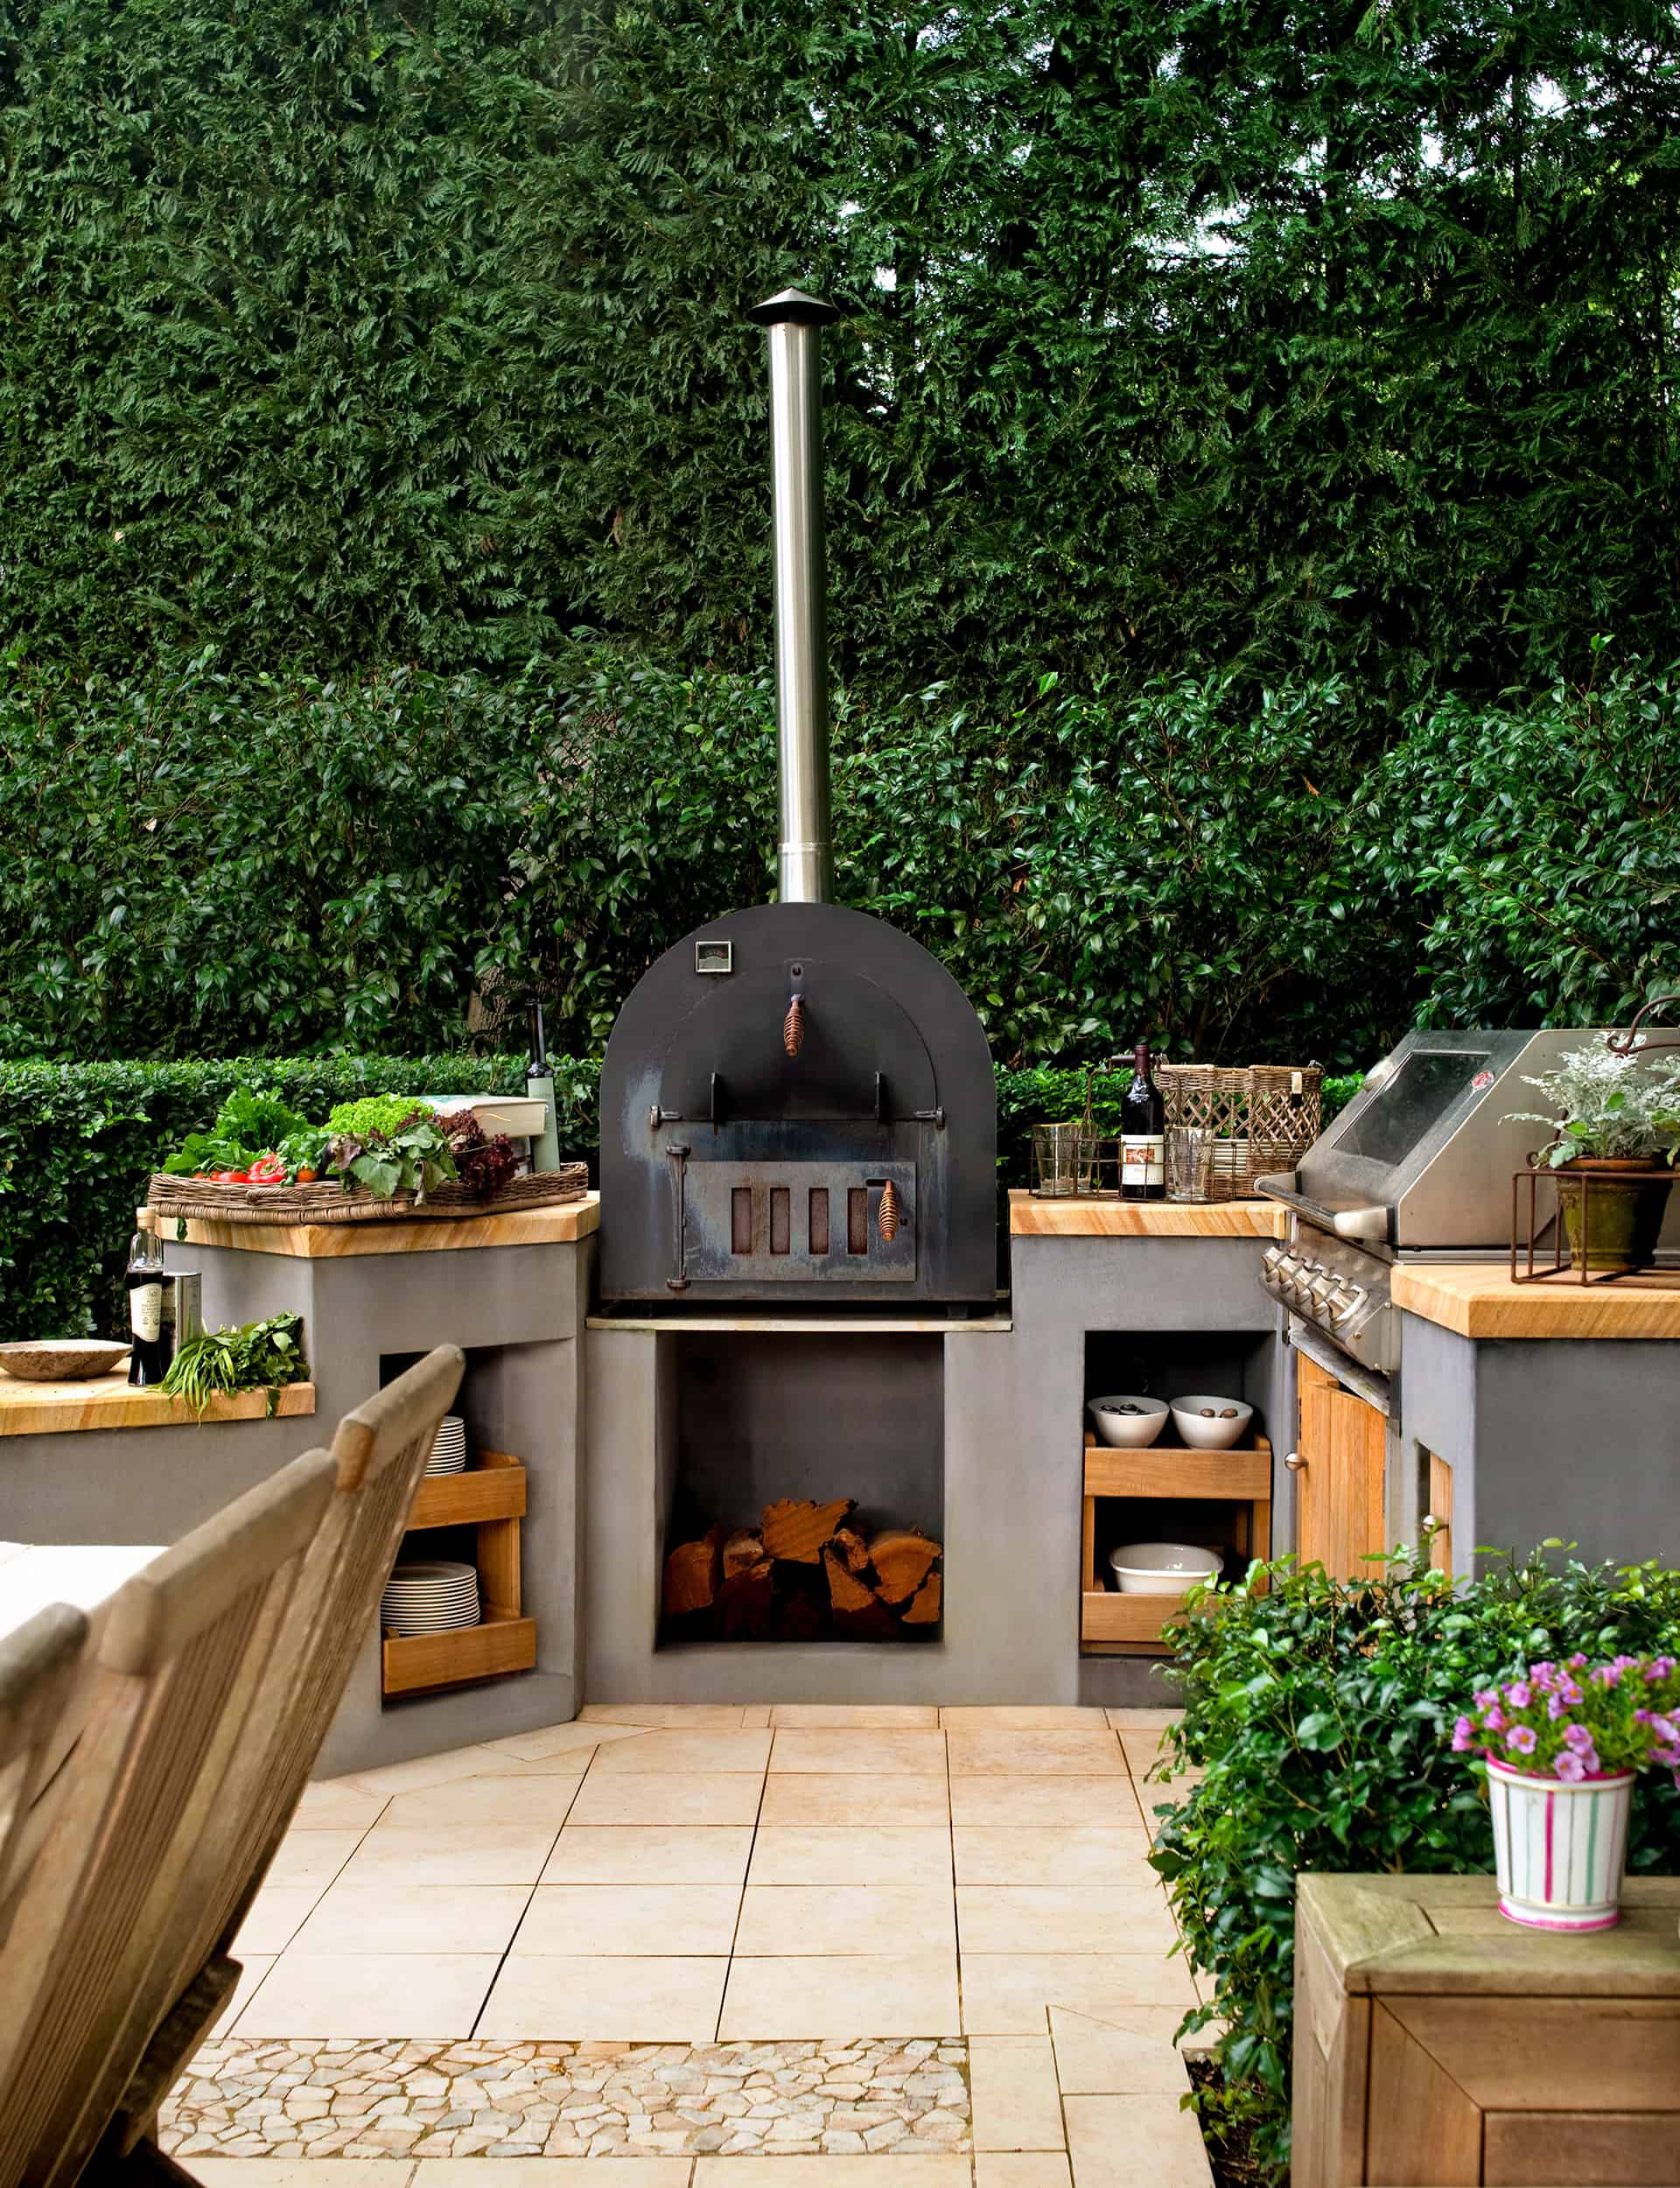 outdoor pizza oven Mesmerizing outdoor kitchen ideas to Inspire your next big renovation